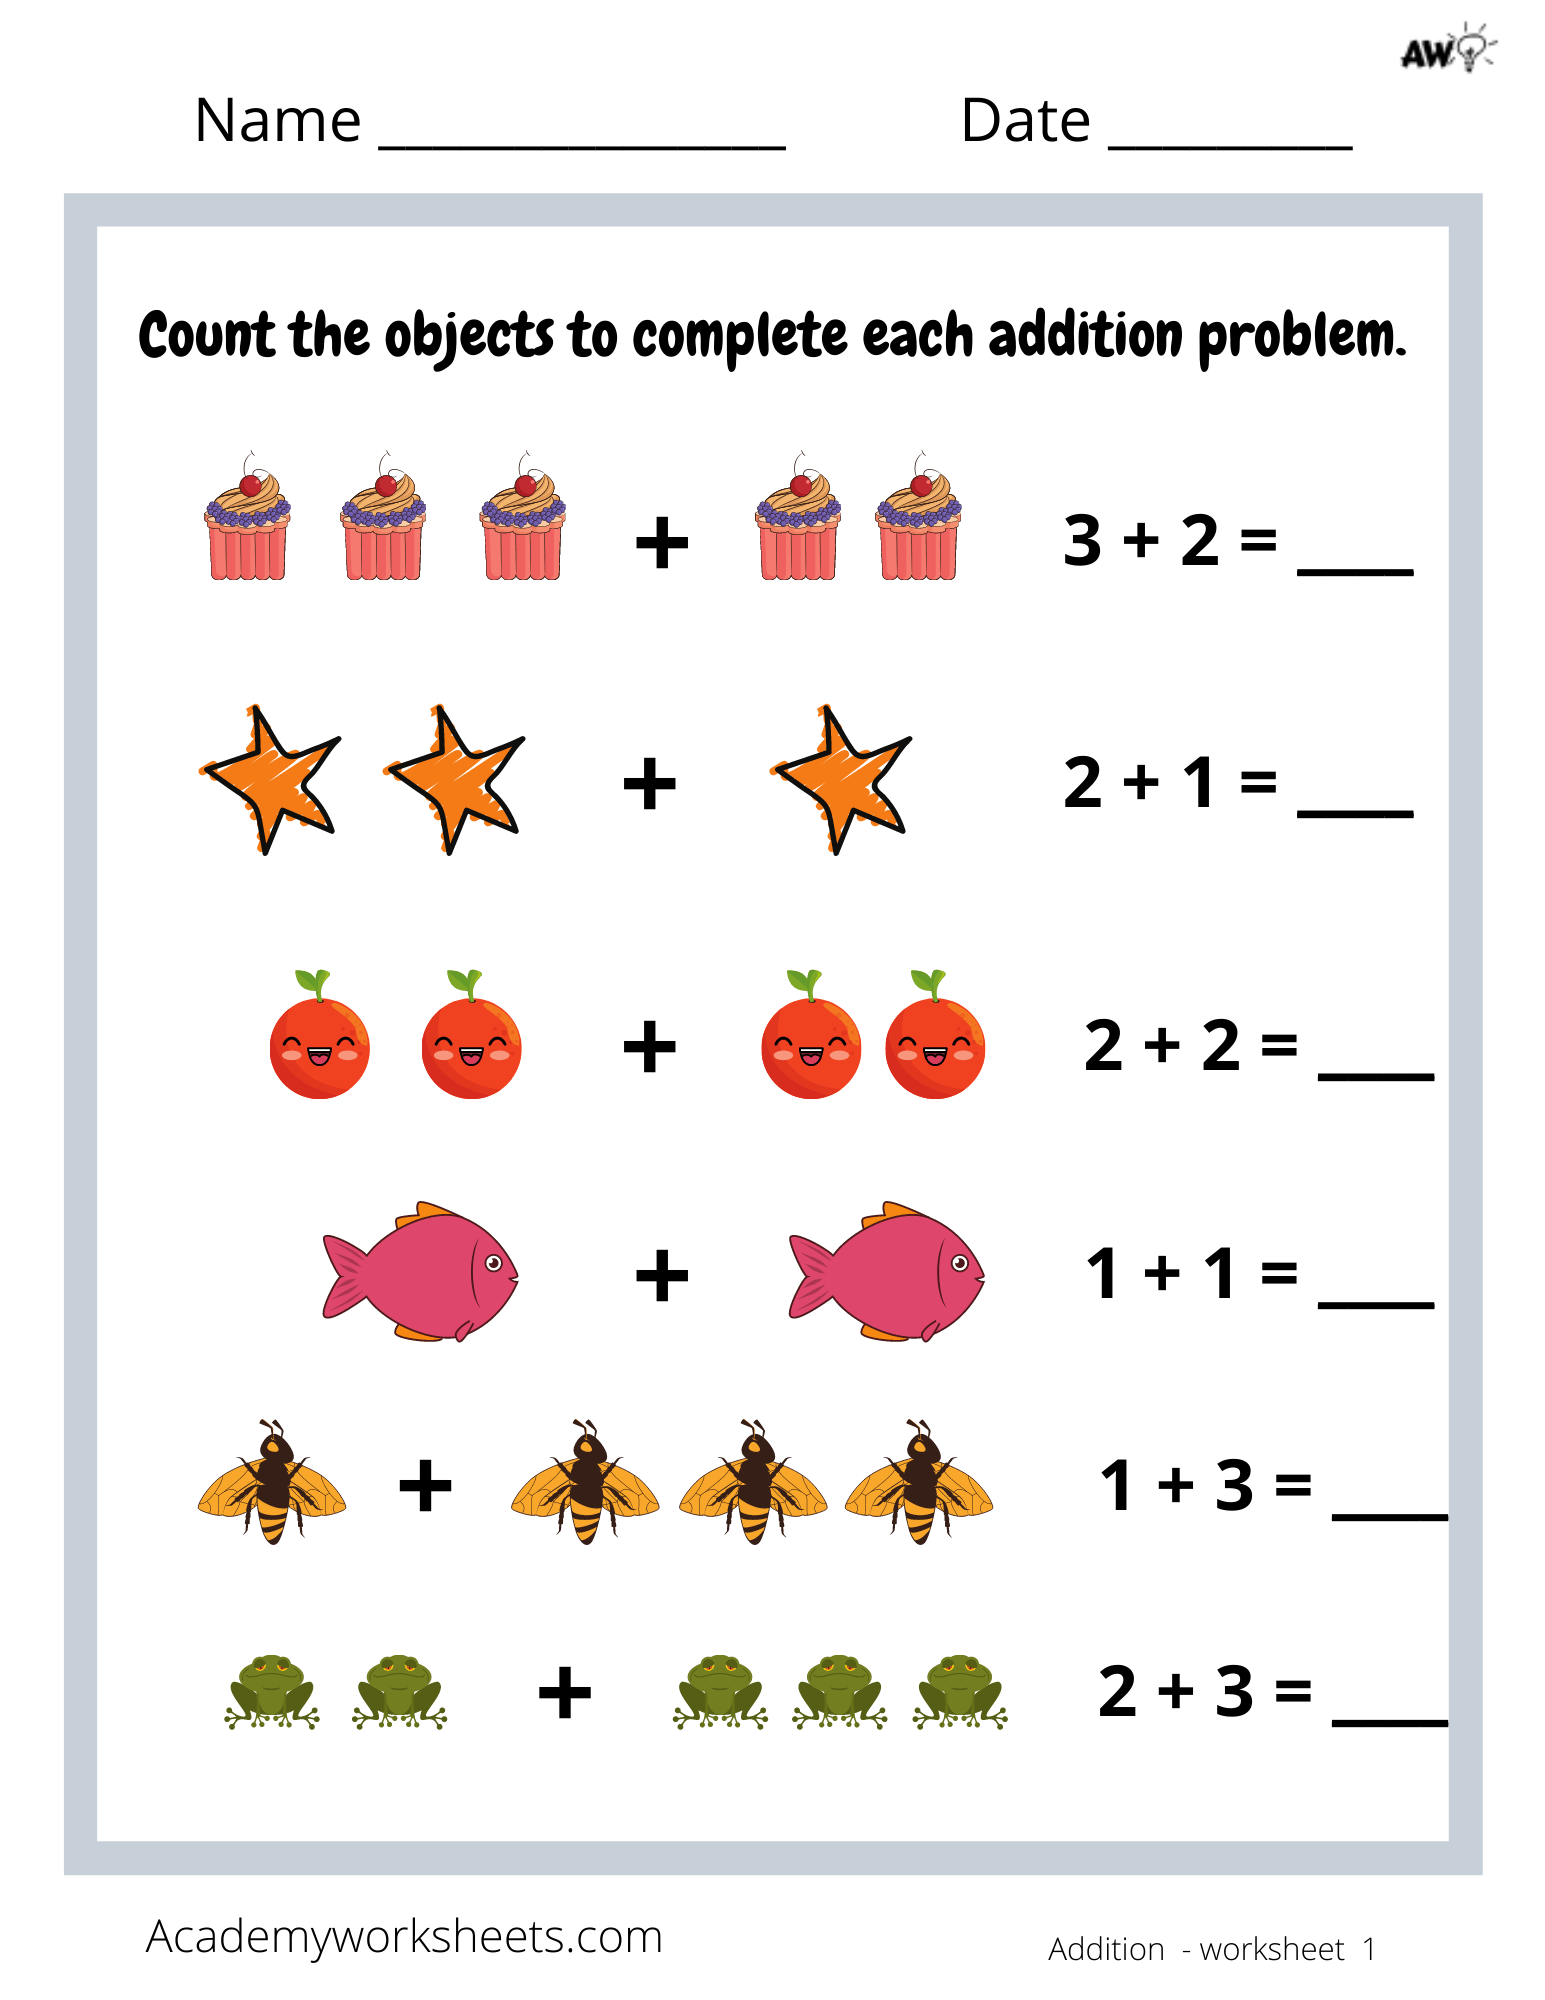 Addition Sums To 5 With Pictures